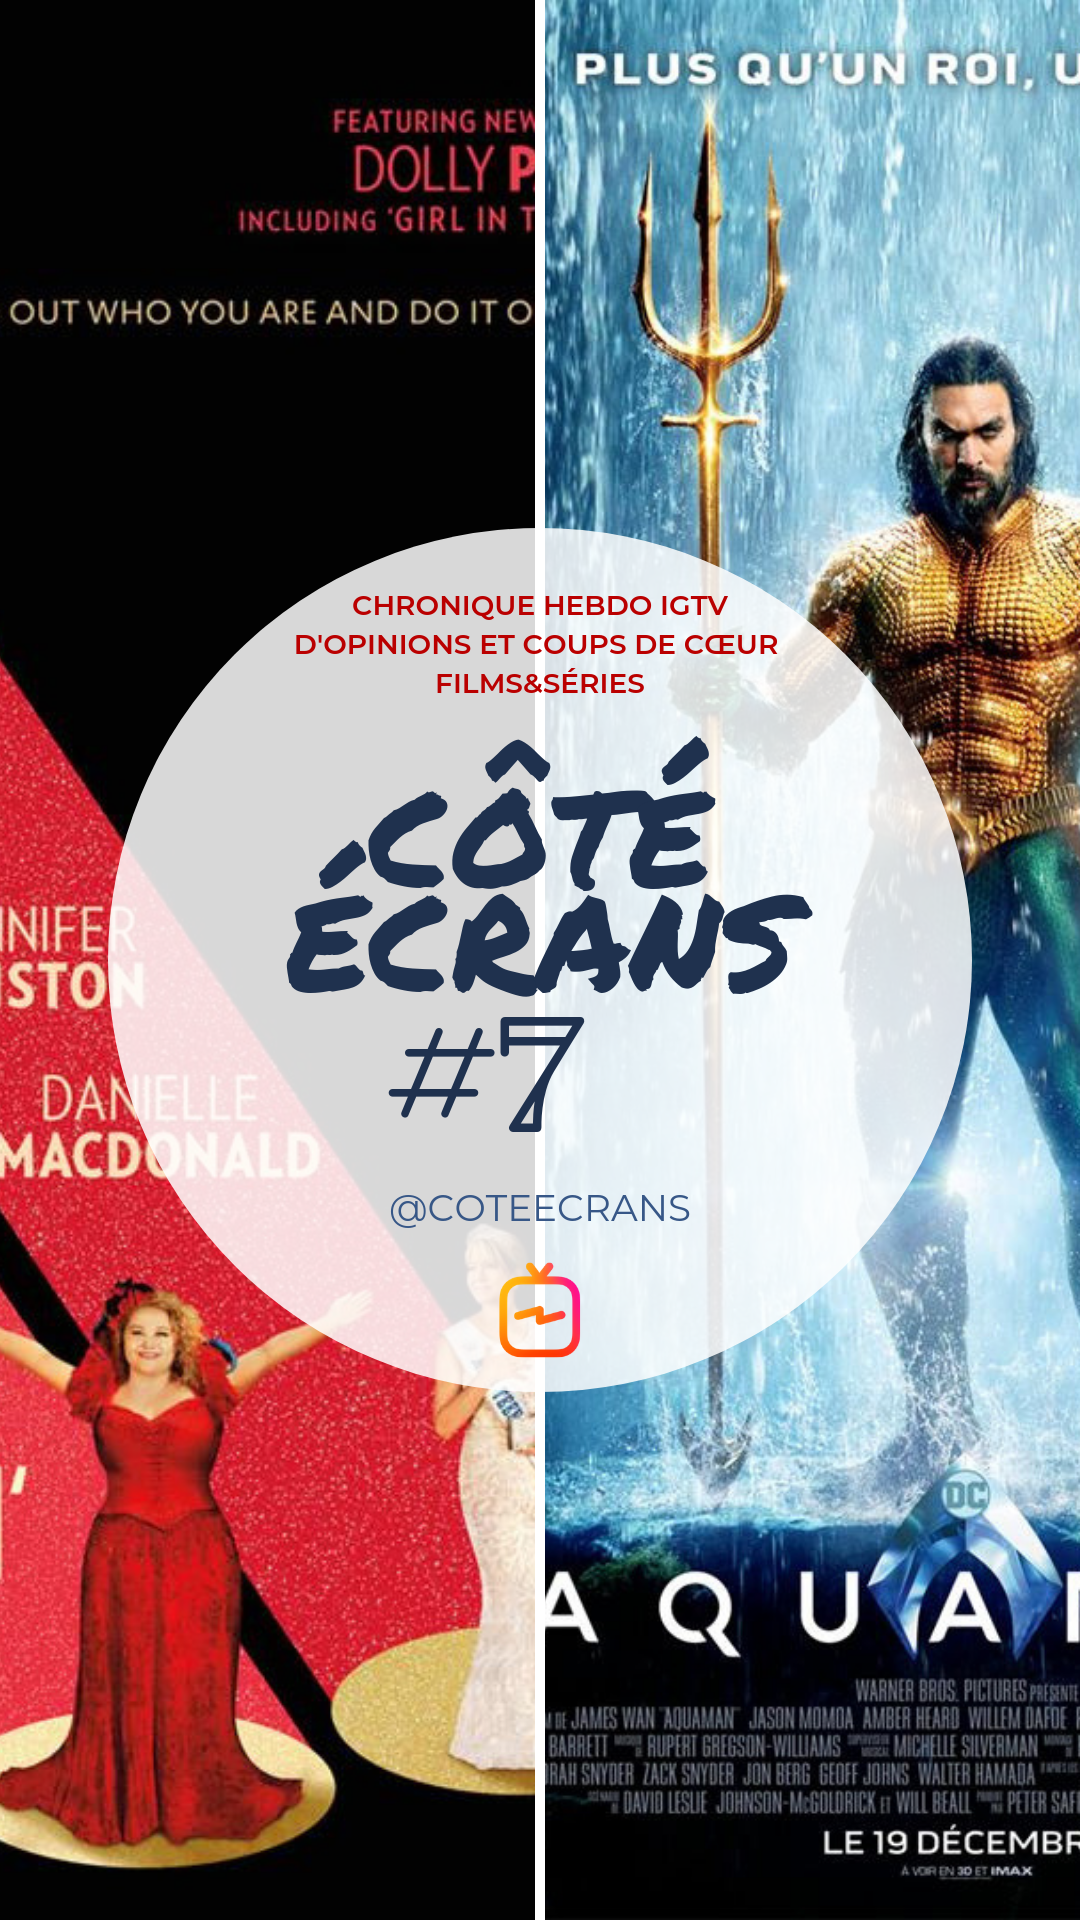 Critique film et serie Dumplin' et Aquaman